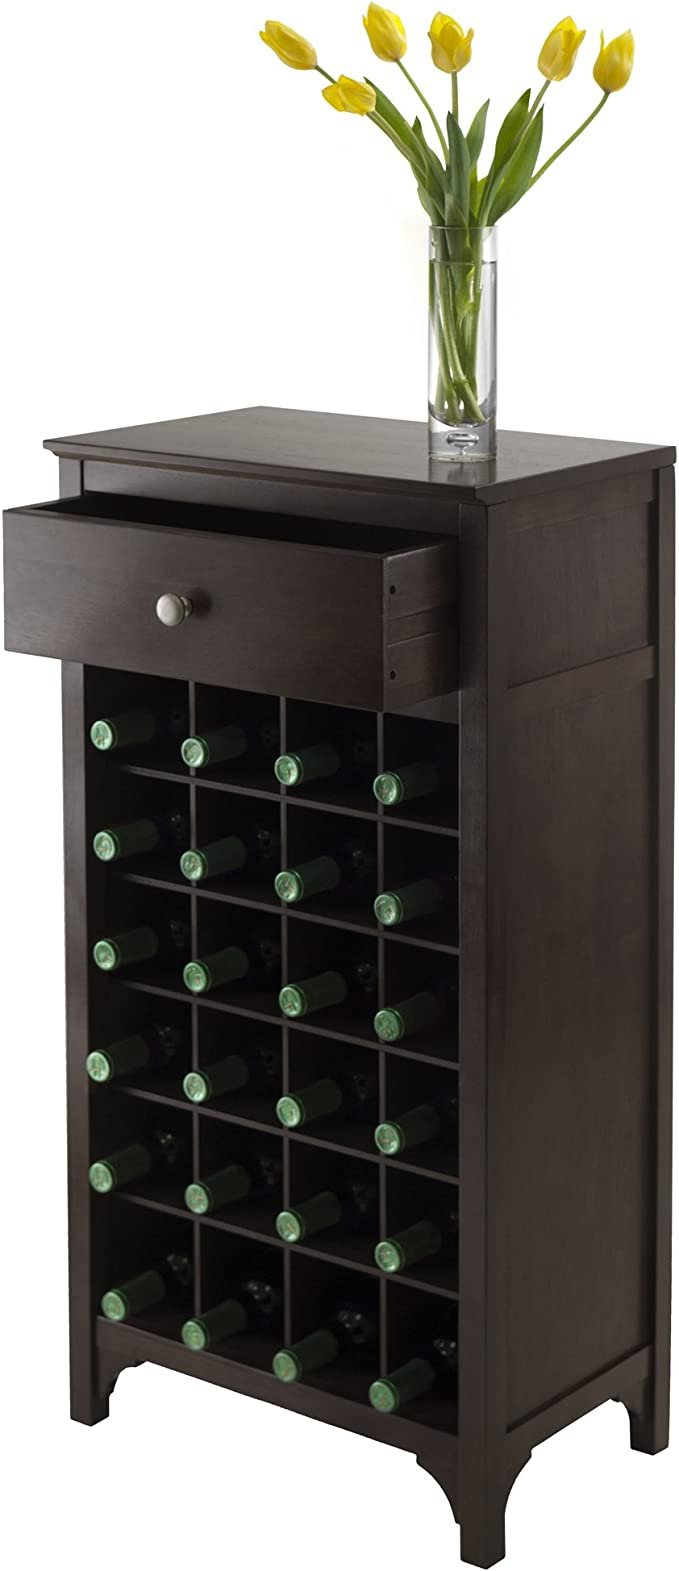 15.47 by 9.25 by 4.65-Inch Winsome Wood Ancona Wine Cabinet